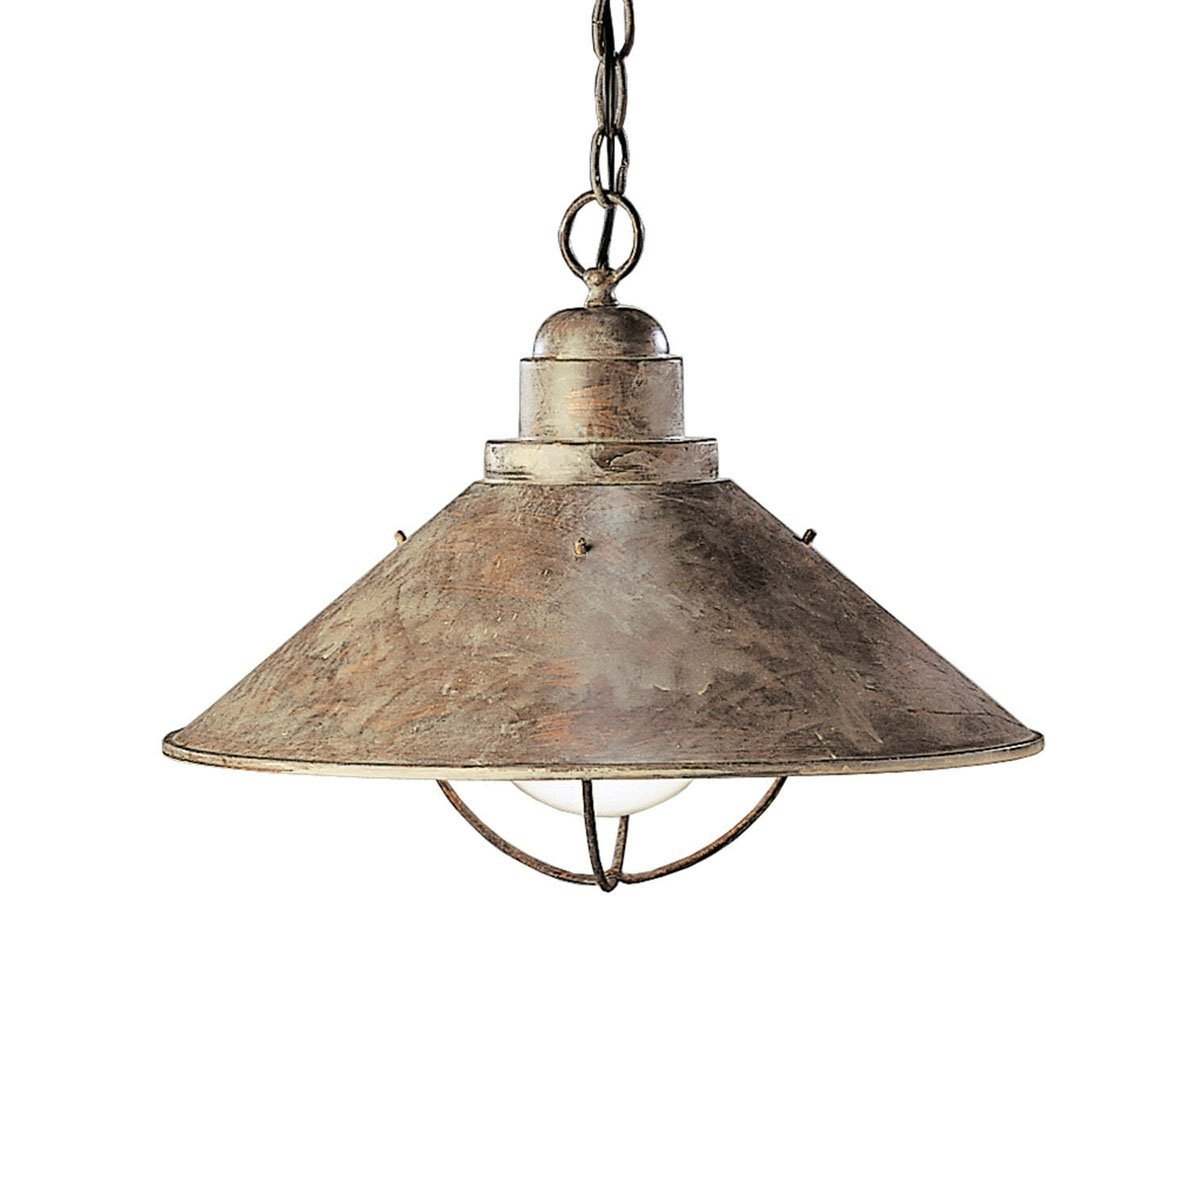 Popular Lighting : Rustic Outdoor Pendant Lighting Kichler 2713Ob One Light With Rustic Outdoor Hanging Lights (View 13 of 20)